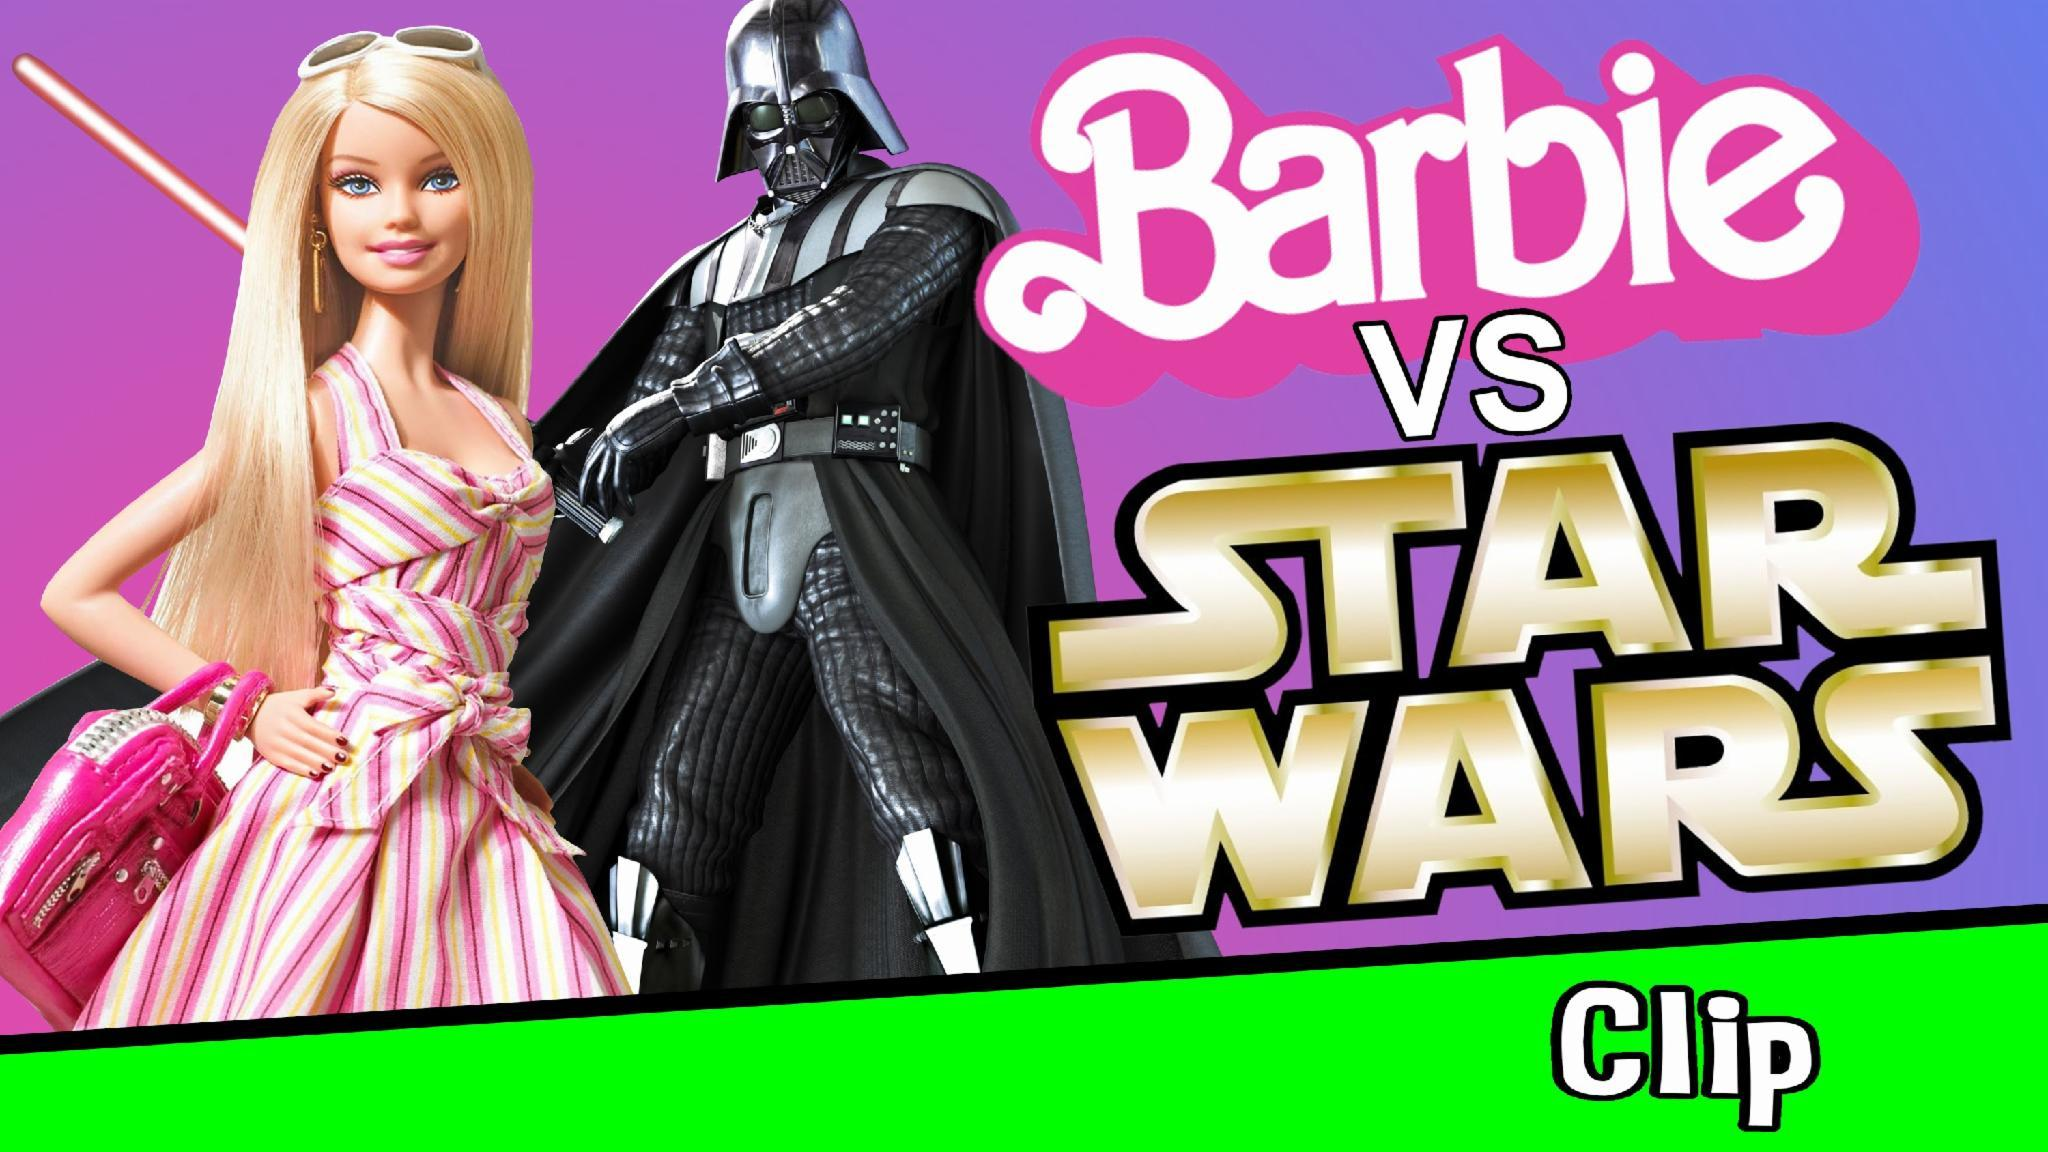 Star Wars or Barbie